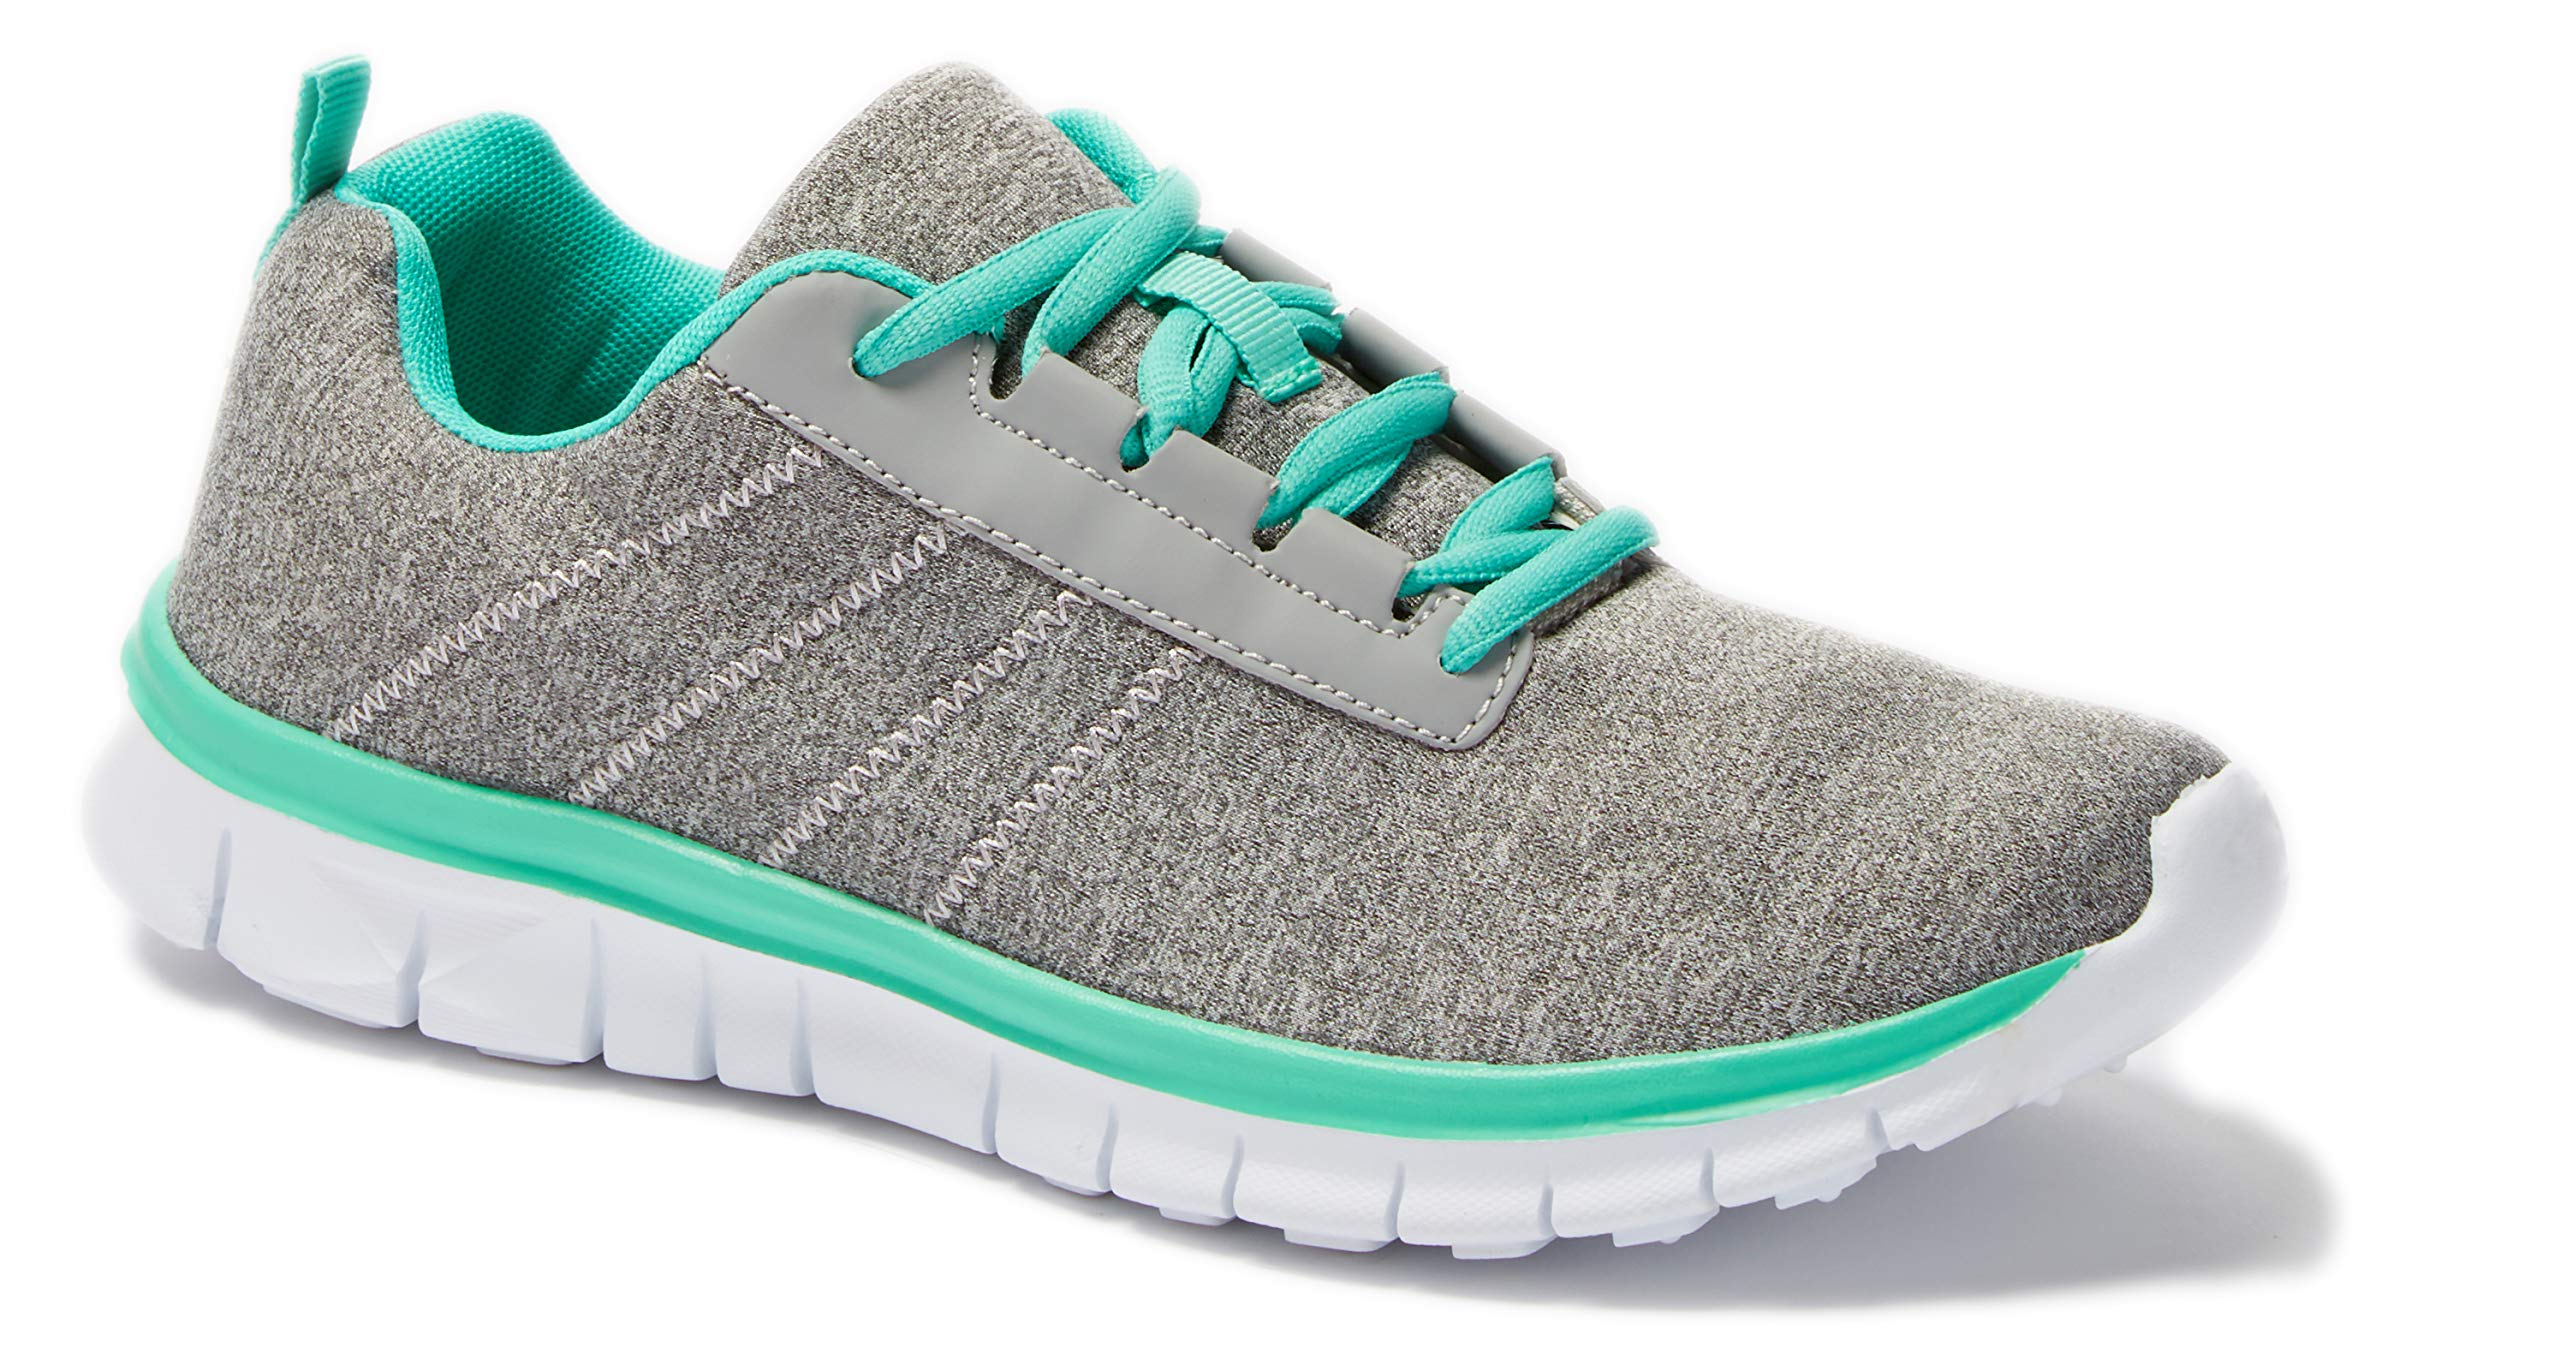 Womens Sneakers Athletic Knit Mesh Running Light Weight Go Easy Walking Casual Comfort Running Shoes 2.0 (9, Grey and Green) by Shop Pretty Girl (Image #1)